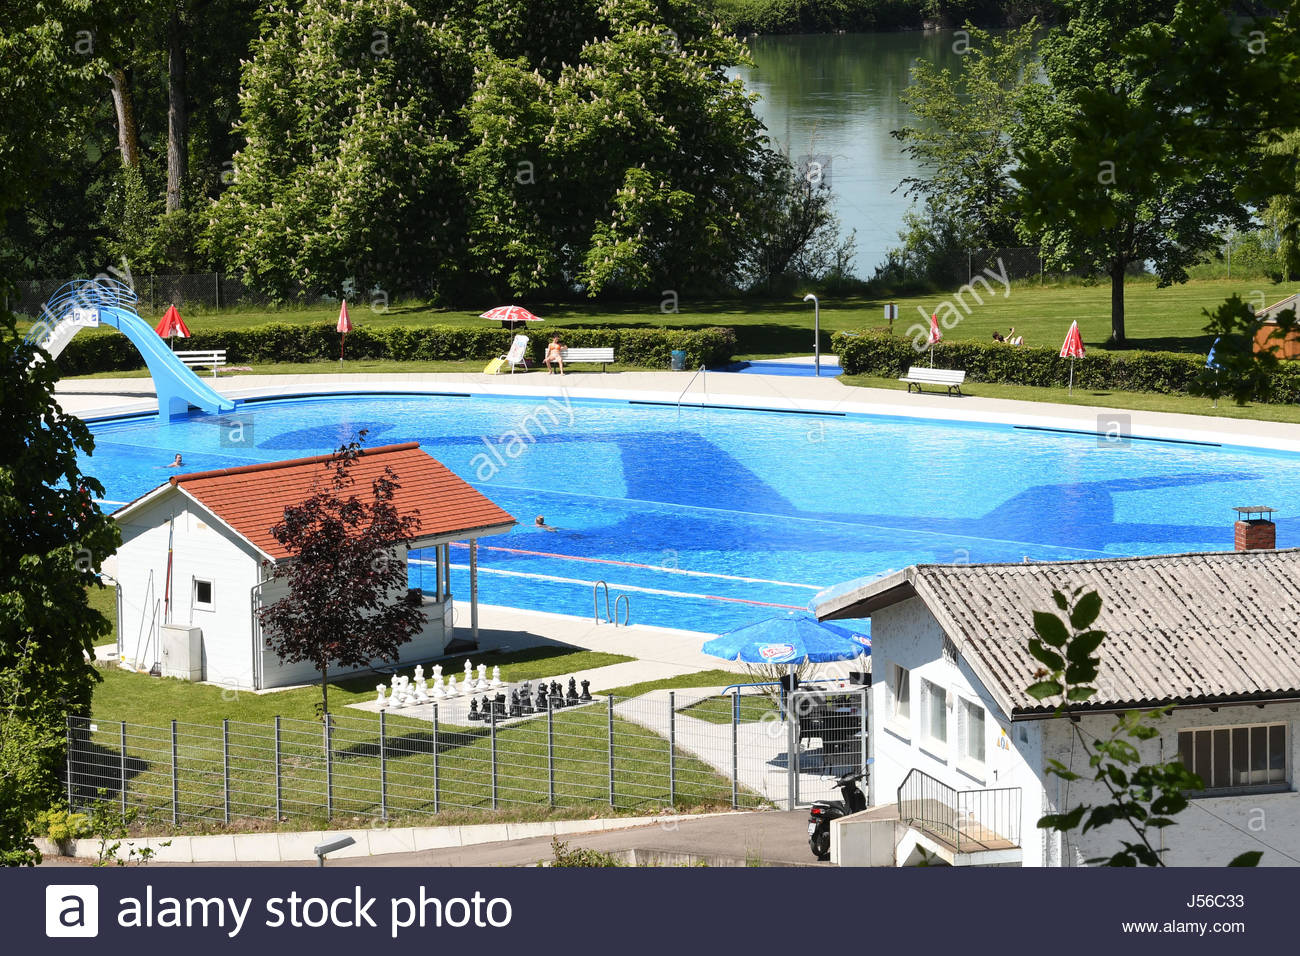 Rothermel stock photos rothermel stock images alamy - An open air swimming pool crossword clue ...